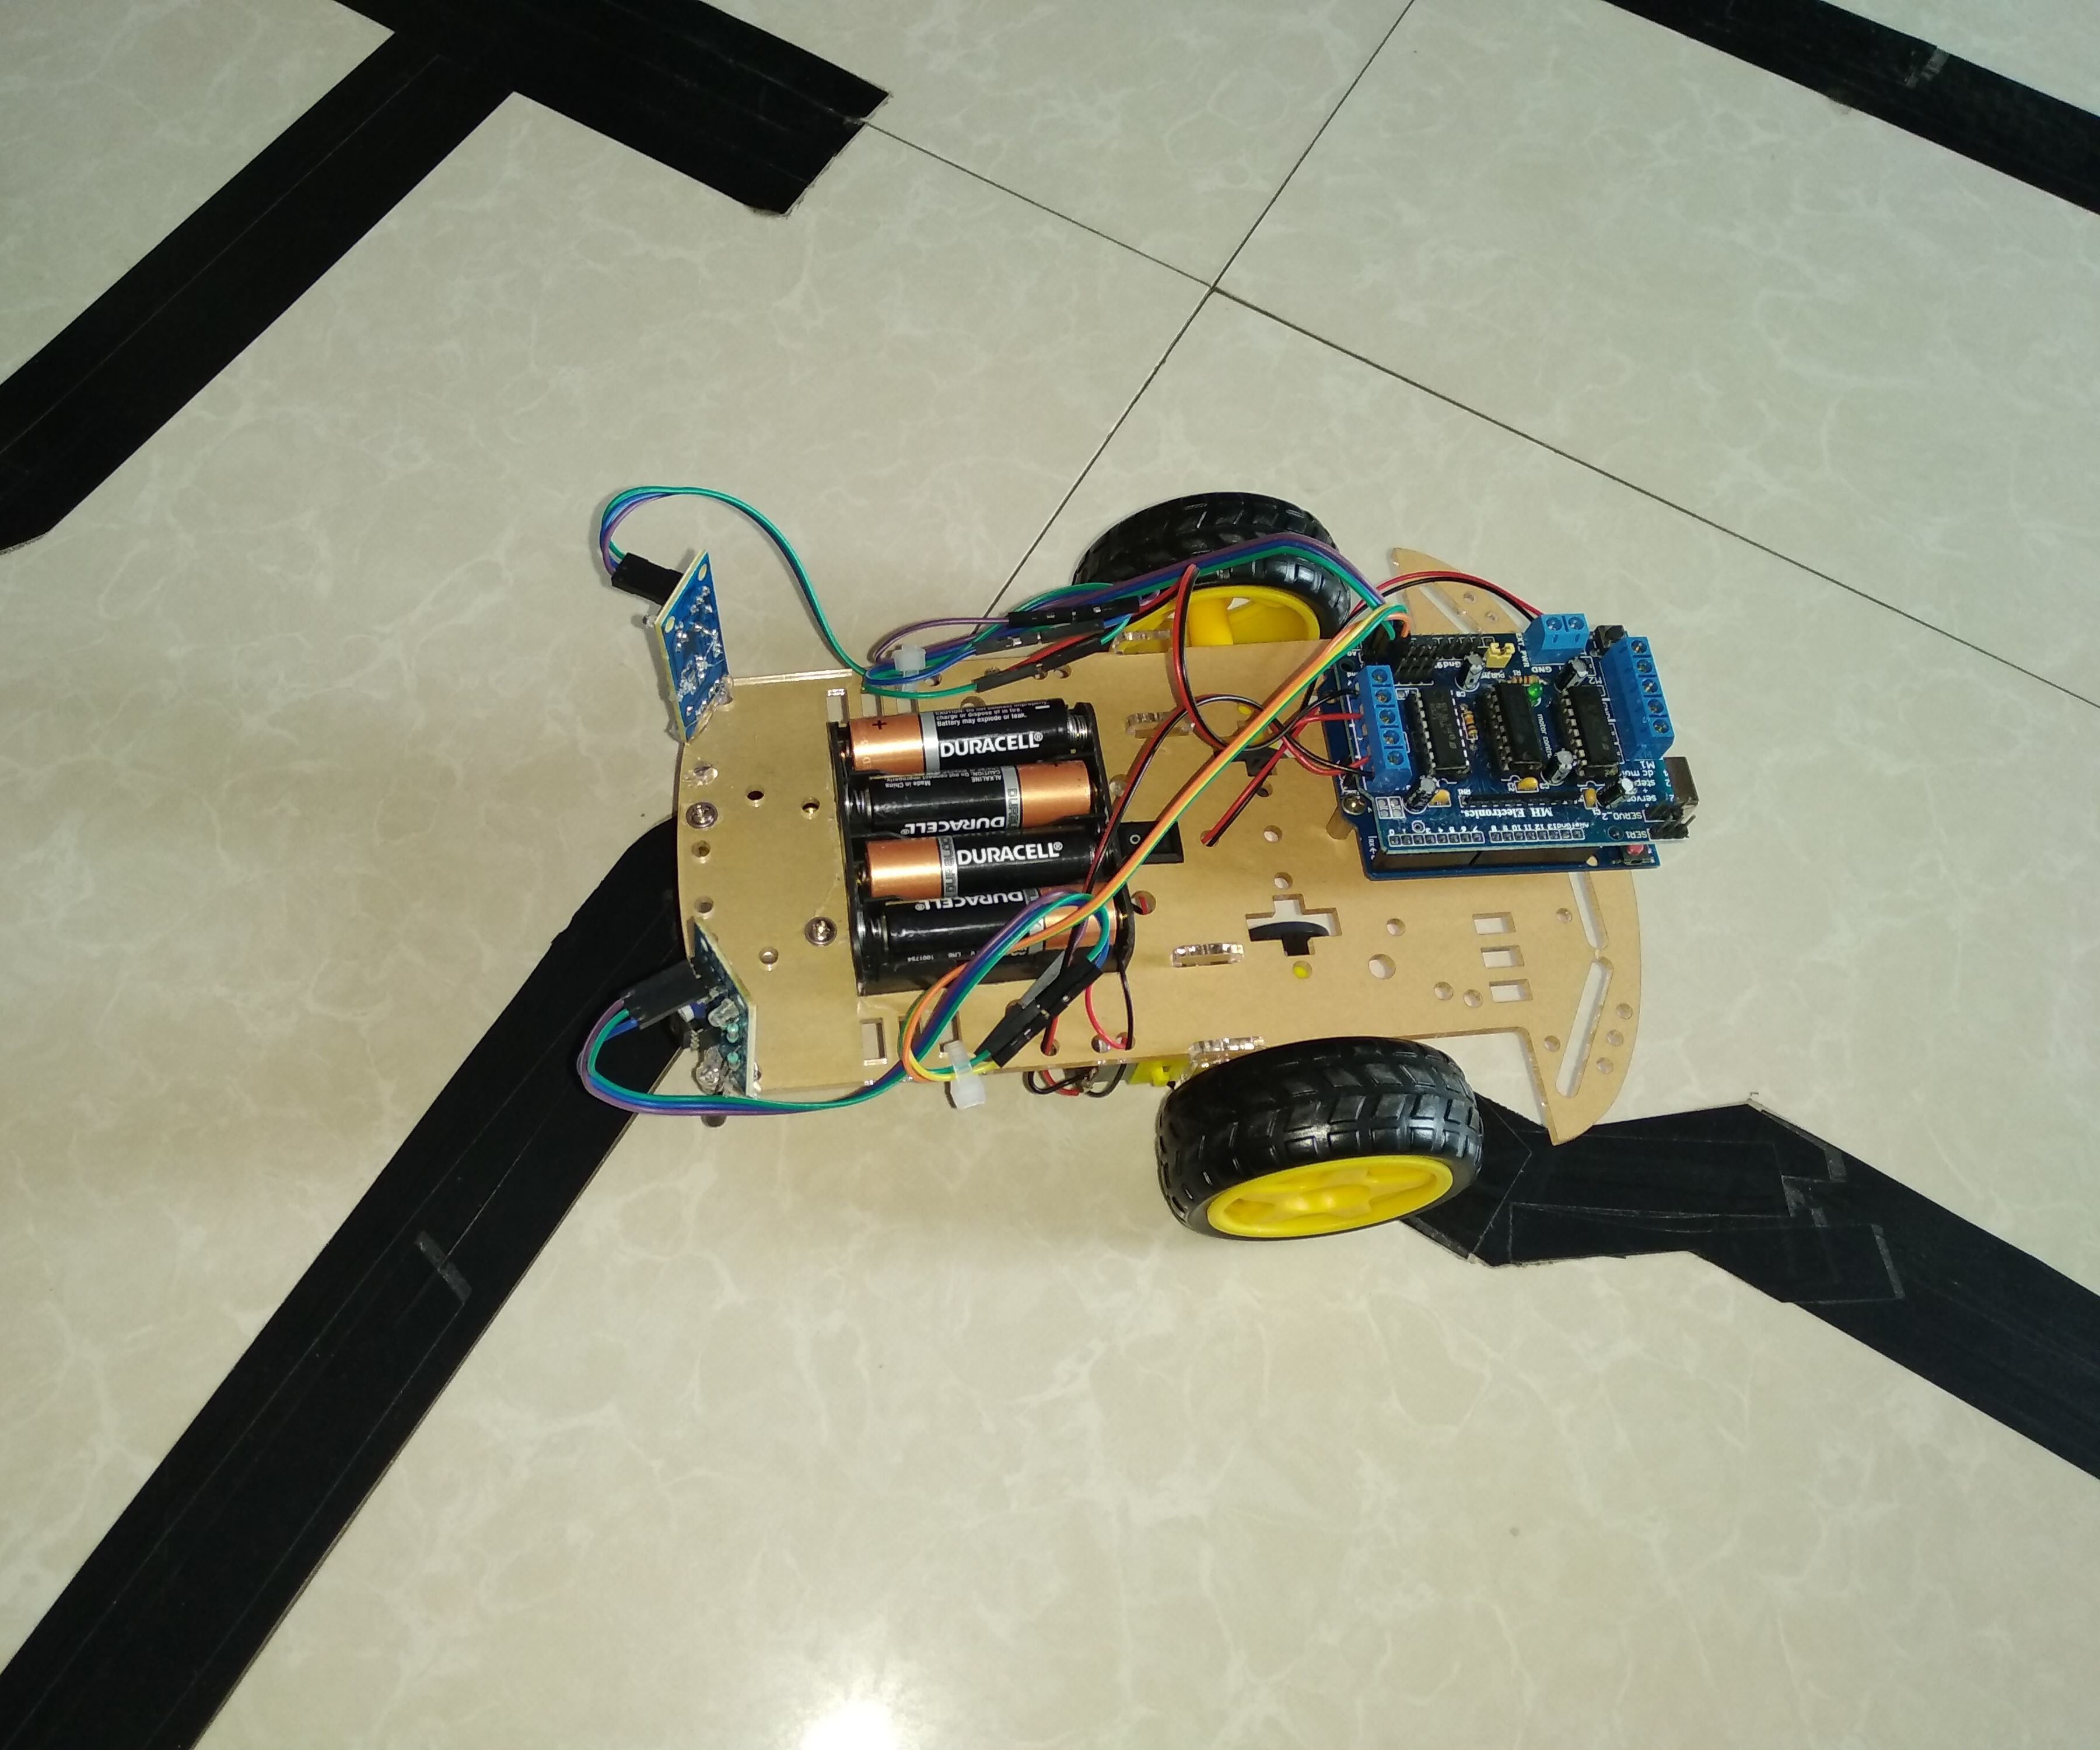 How To Make Line Follower Robot Using Arduino 5 Steps Instructables